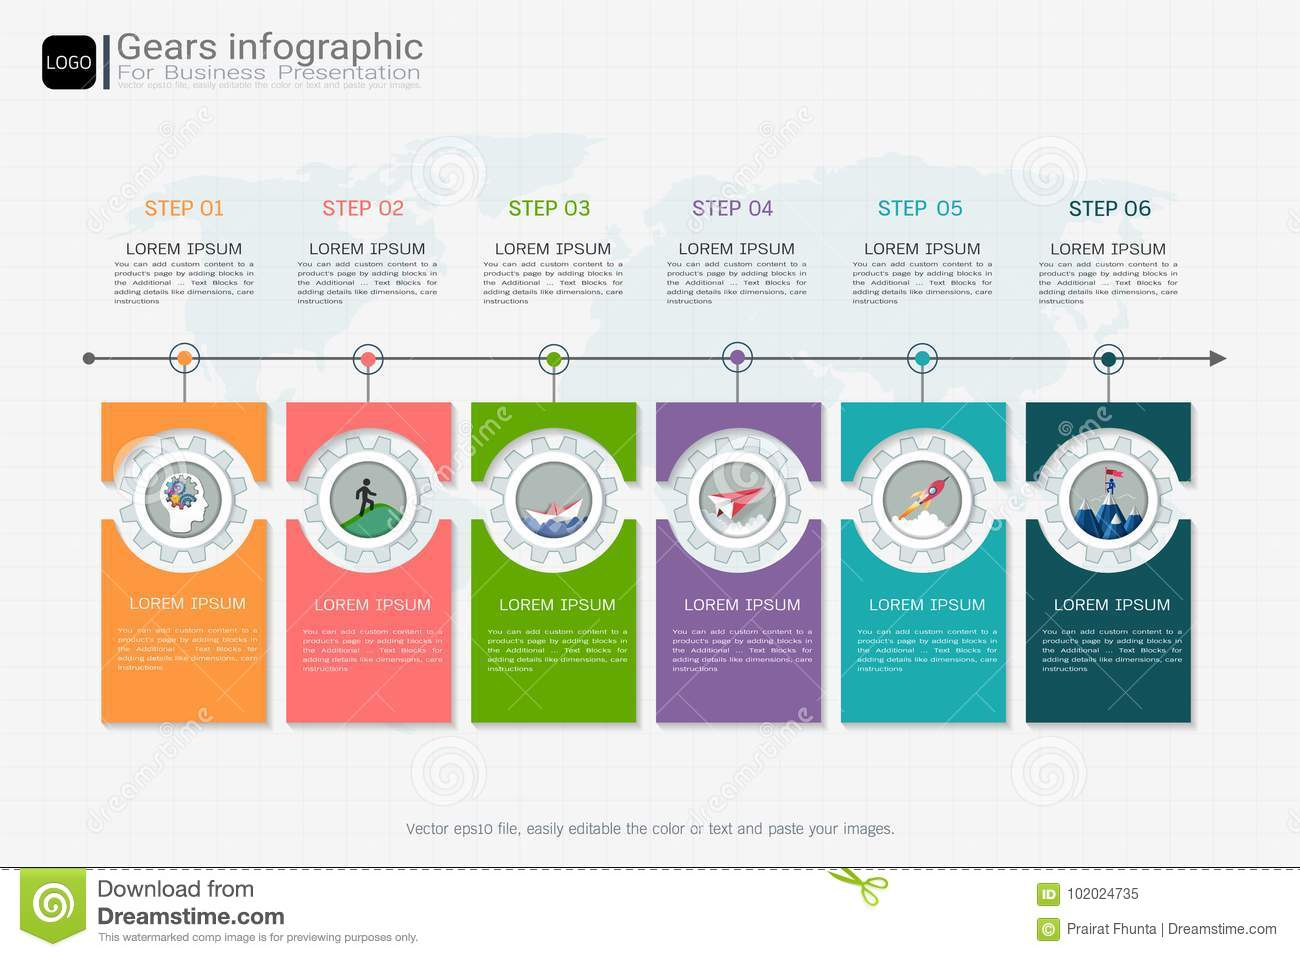 Gears Infographic Template For Business Presentation Strategic Plan To Define Company Values